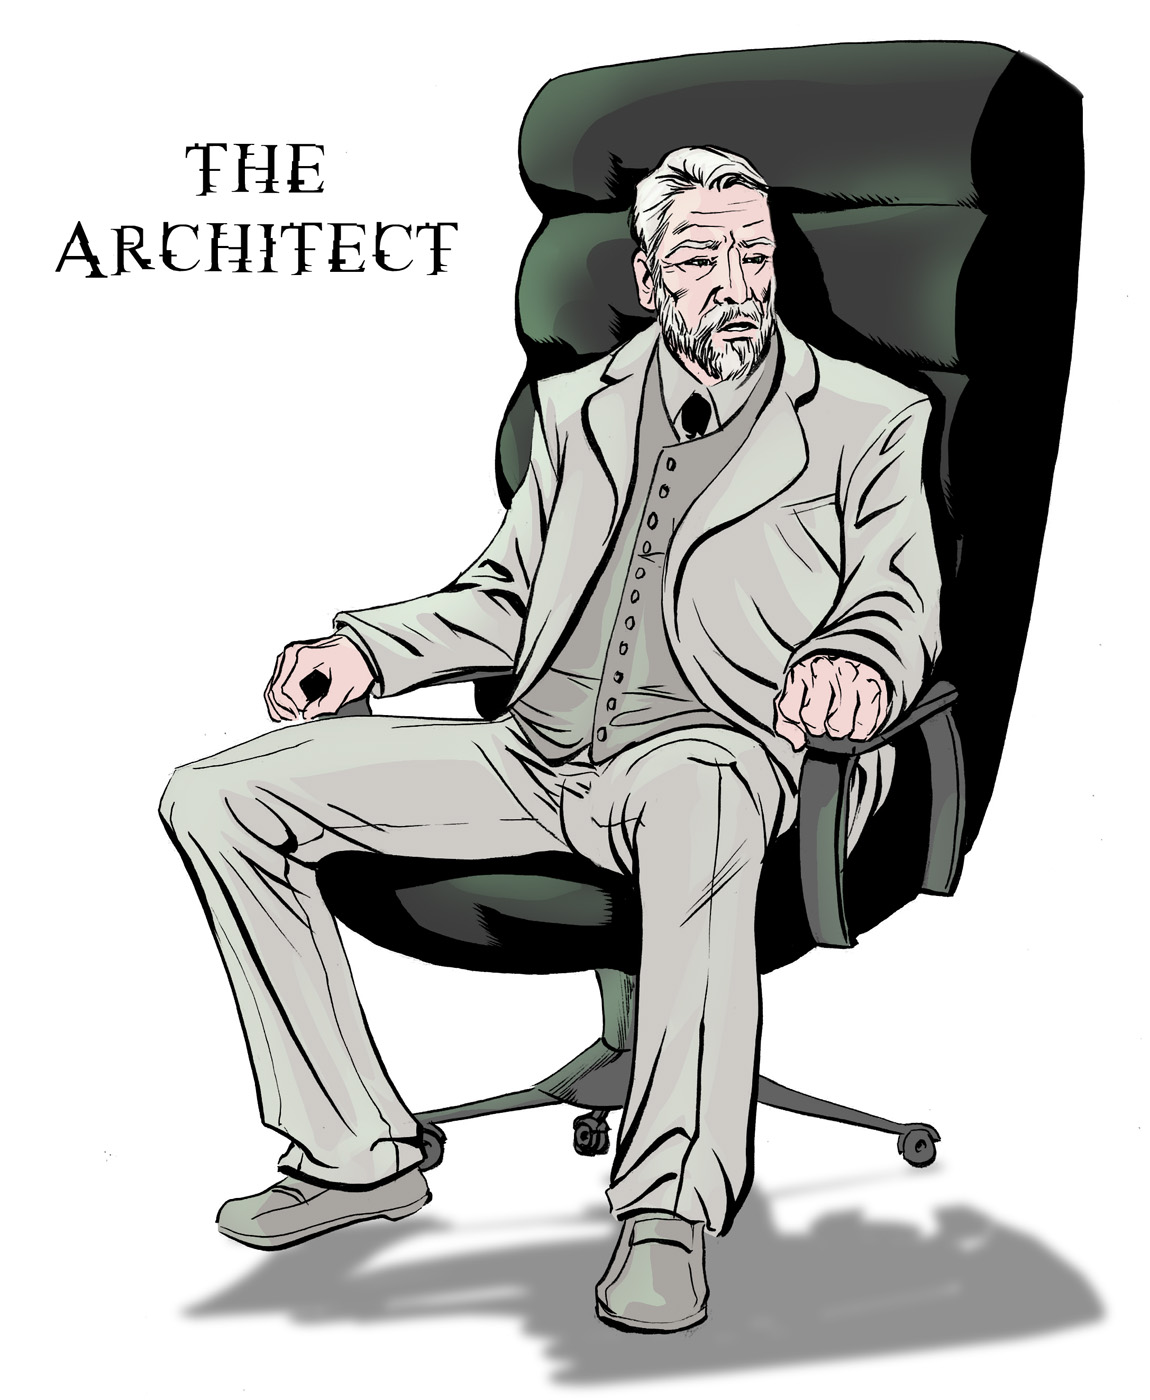 The Architect PH By Thecreatorhd The Architect PH By Thecreatorhd